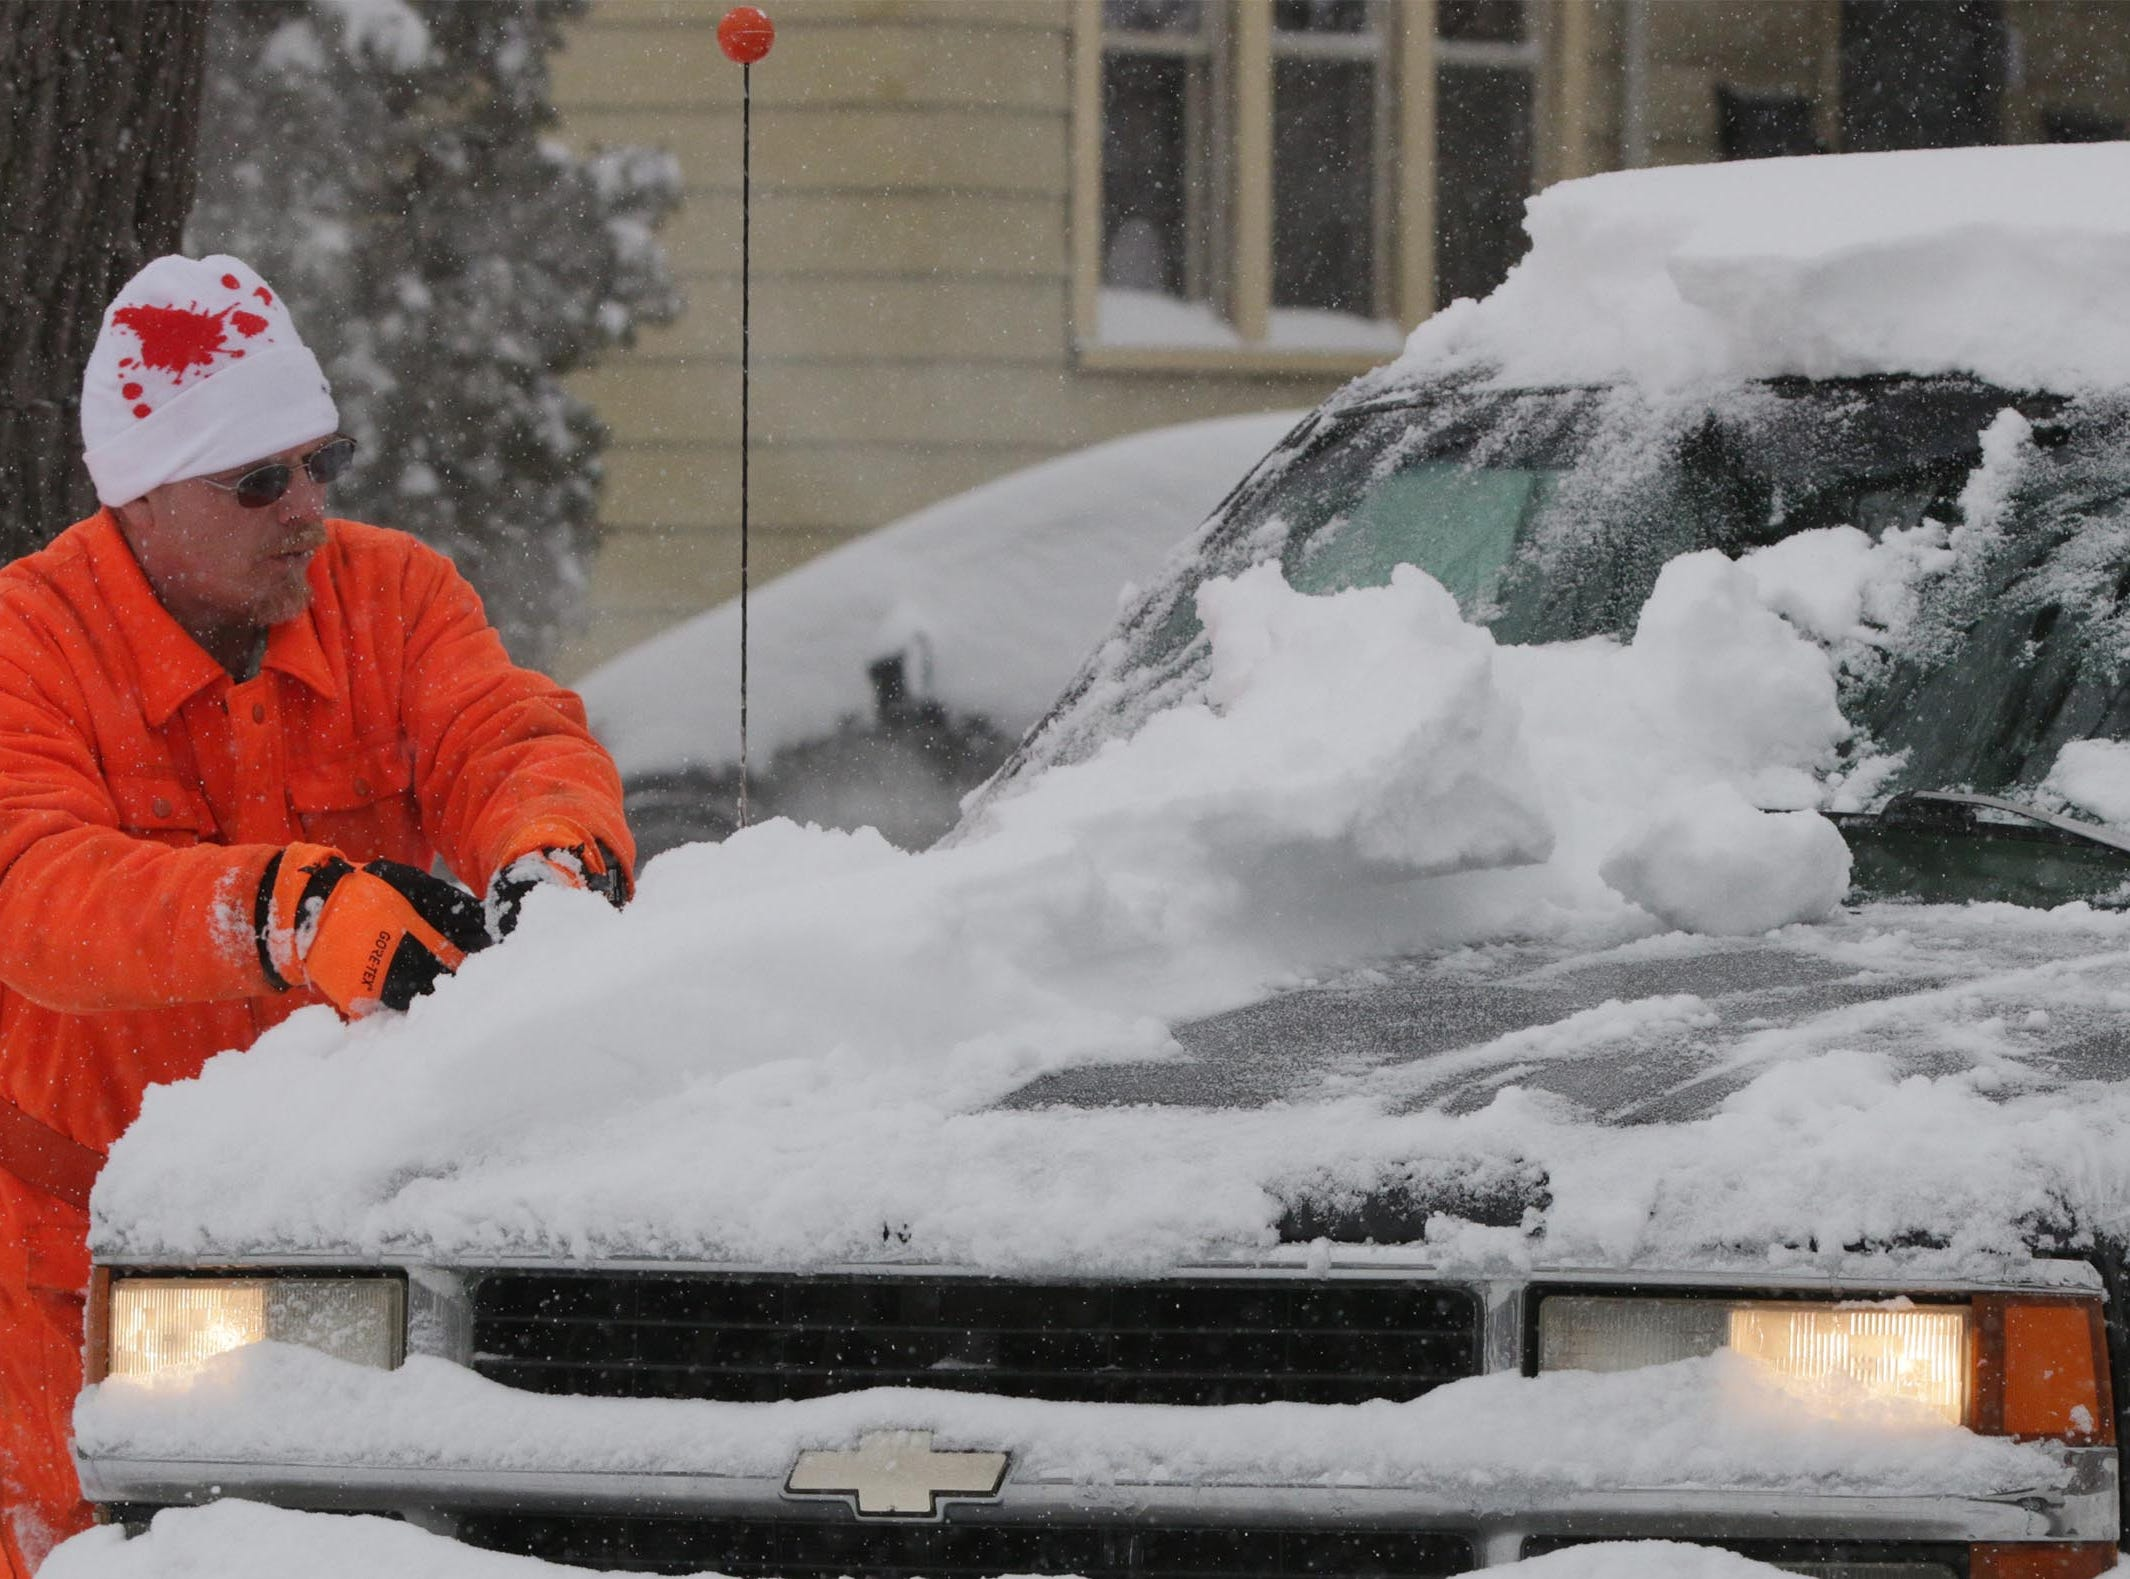 Clifton Hart clears off his truck on North 8th Street following snowfall, Tuesday, February 12, 2019, in Sheboygan, Wis.